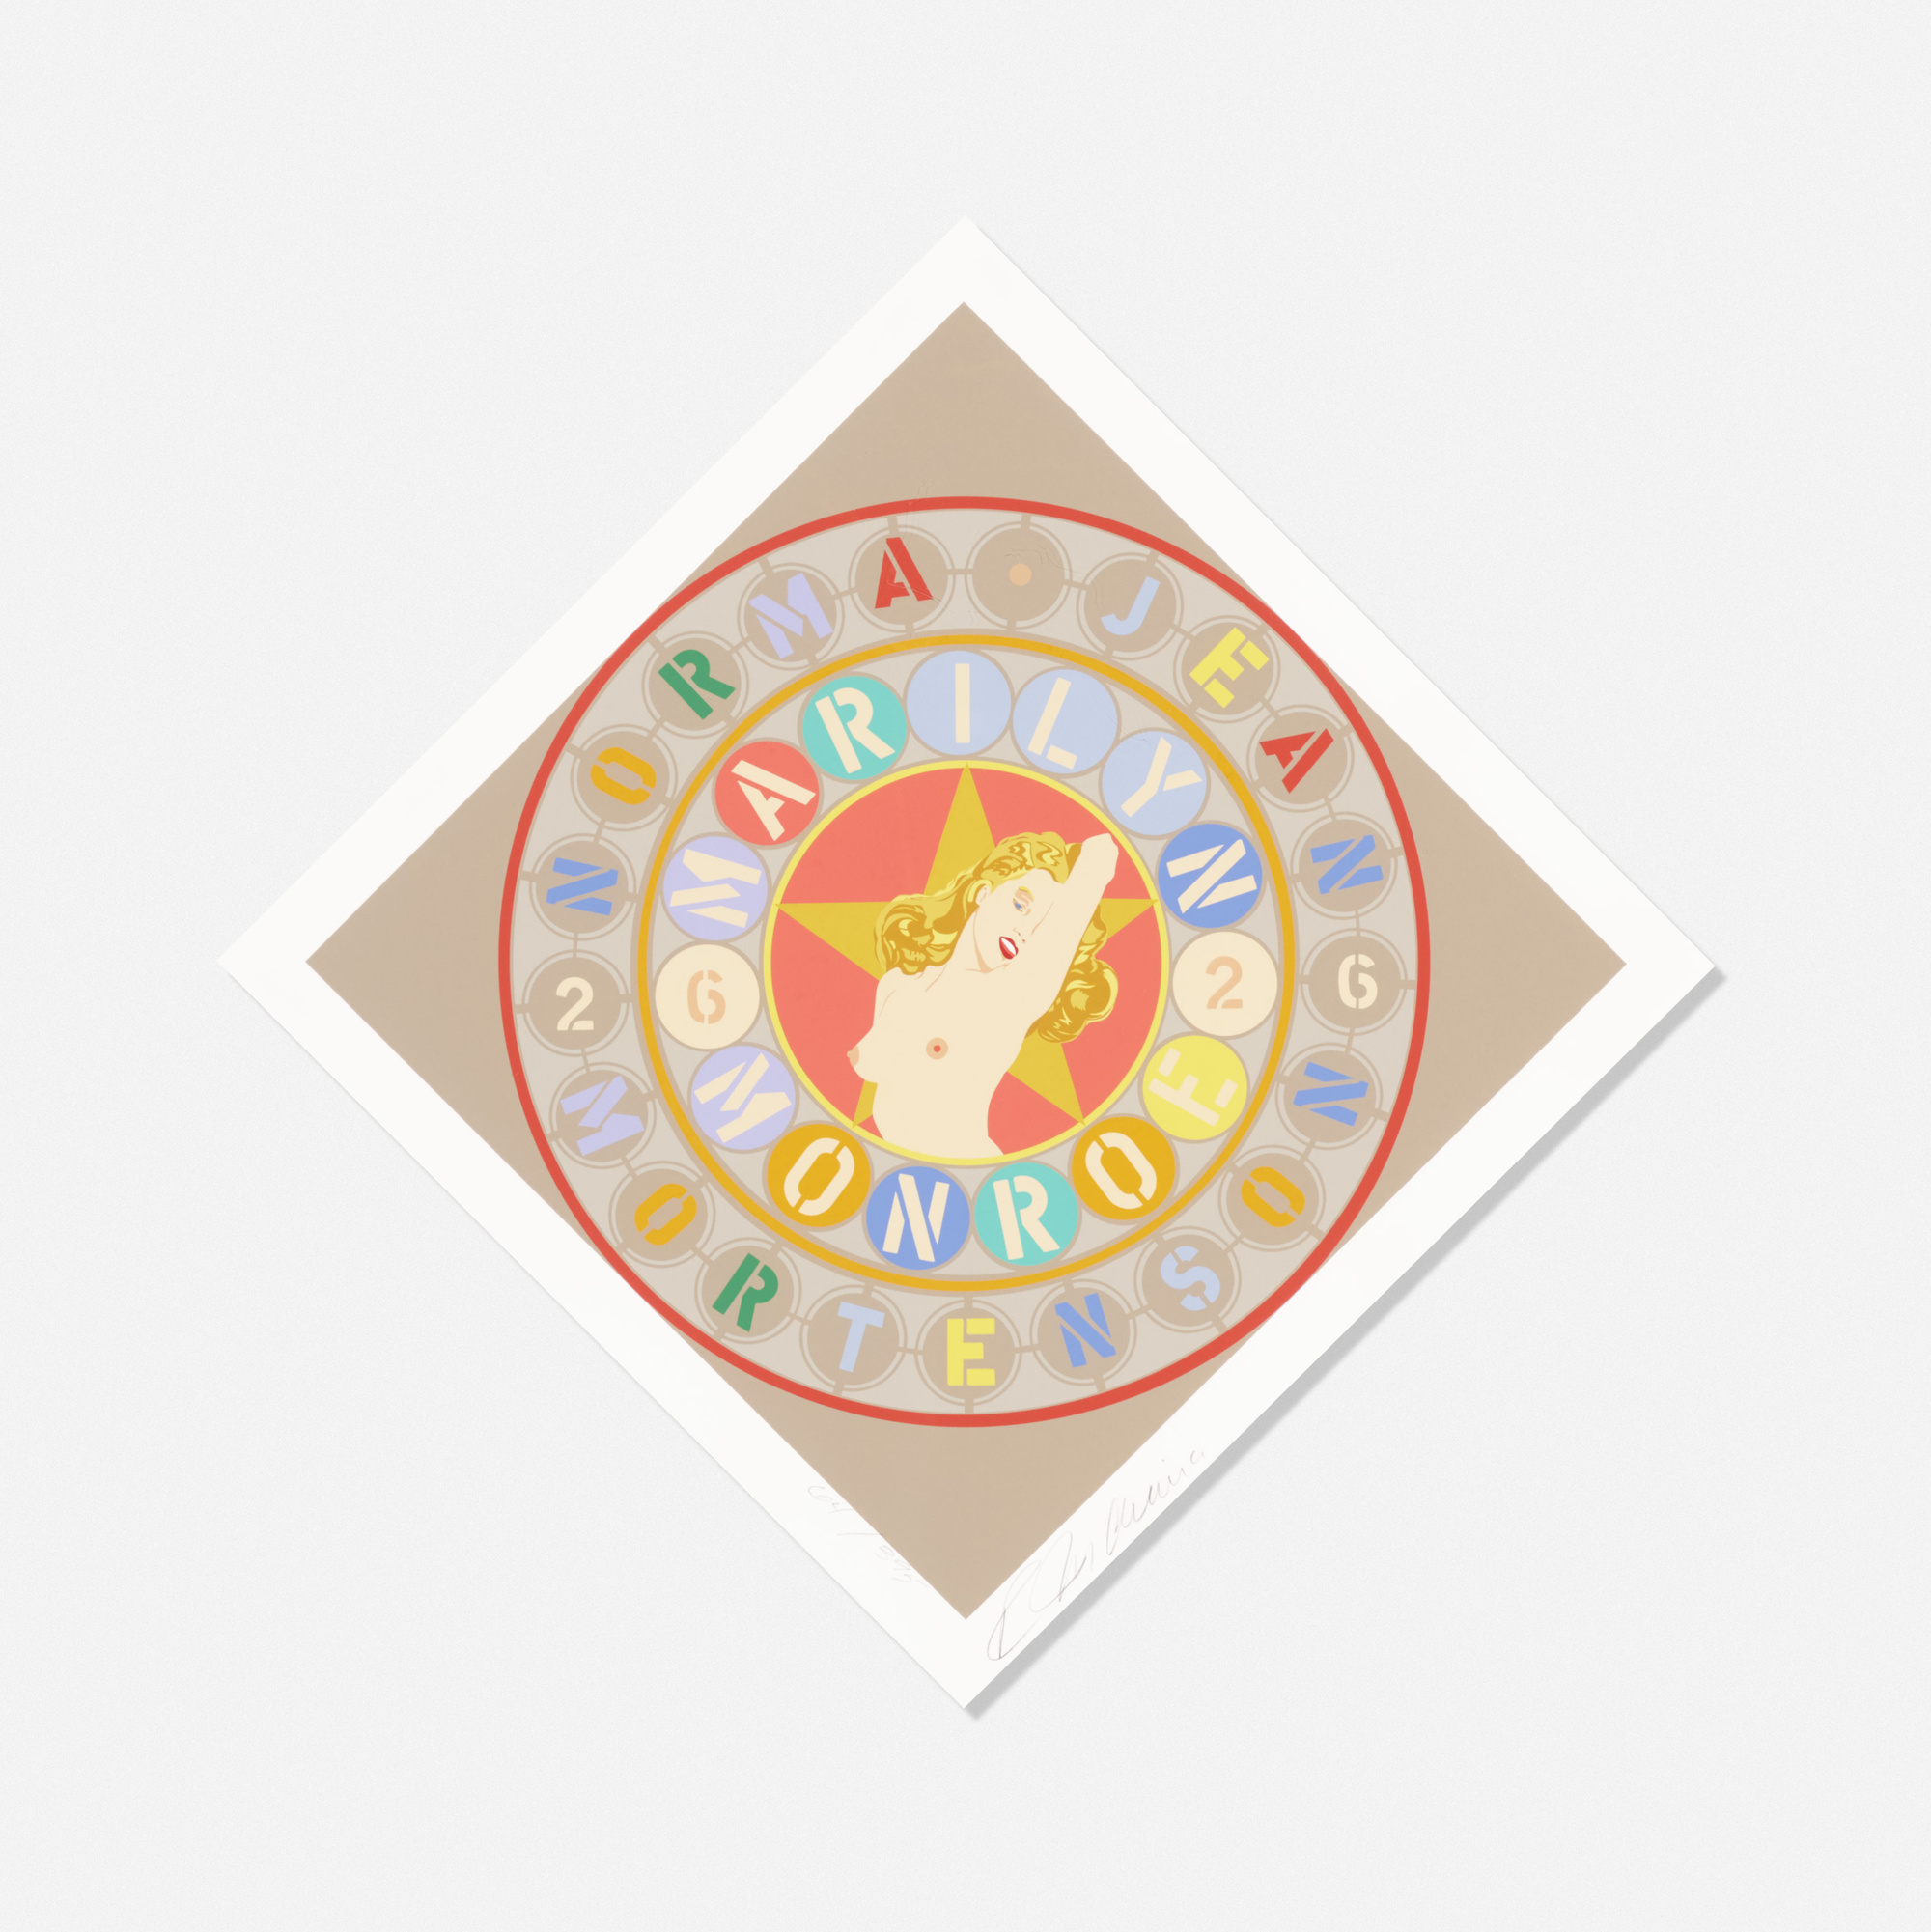 144: Robert Indiana / Marilyn (from the American Dream portfolio) (1 of 1)